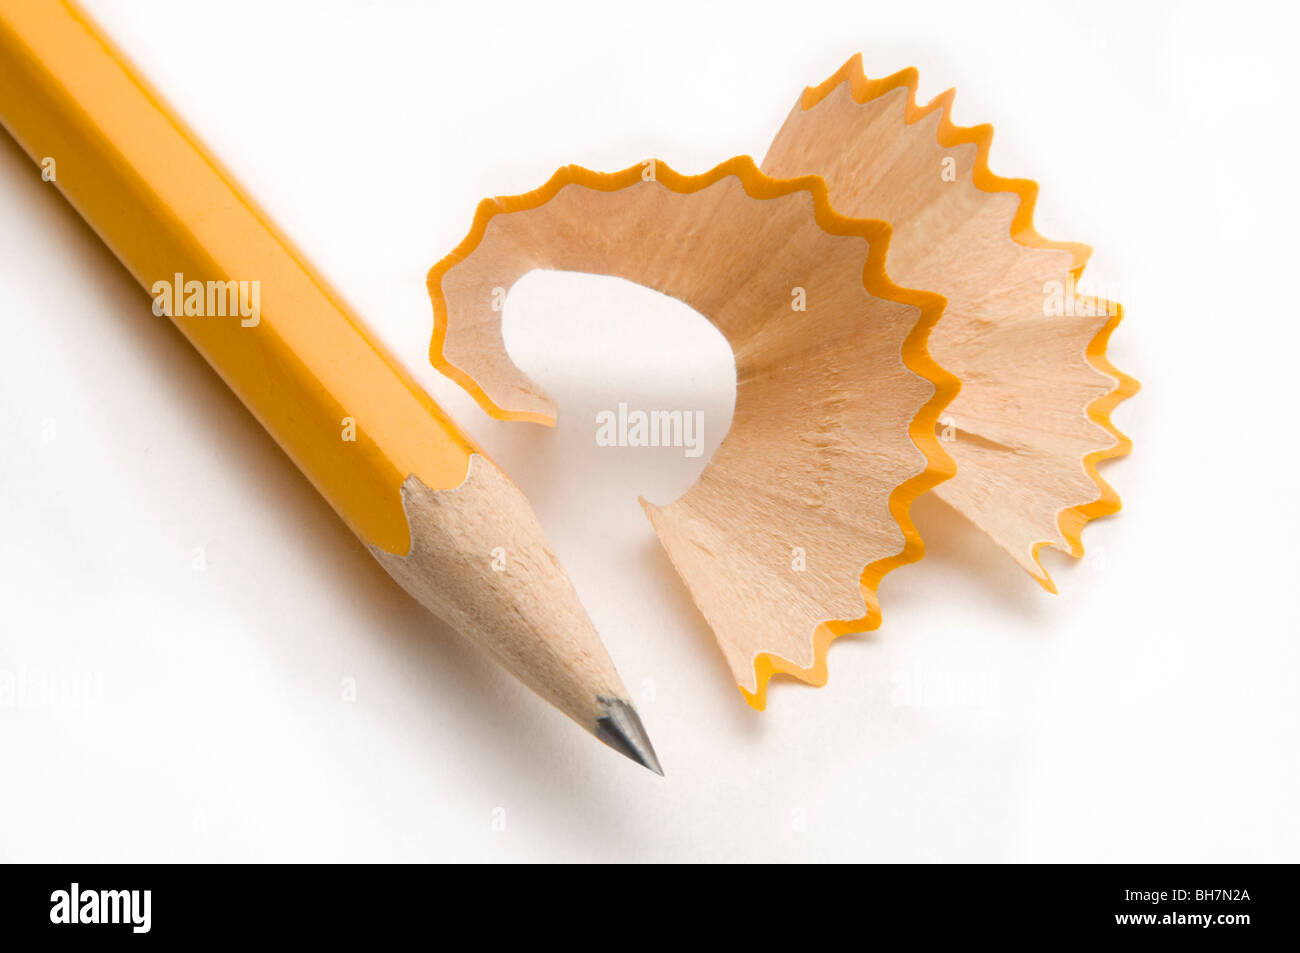 yellow pencil with shavings - Stock Image